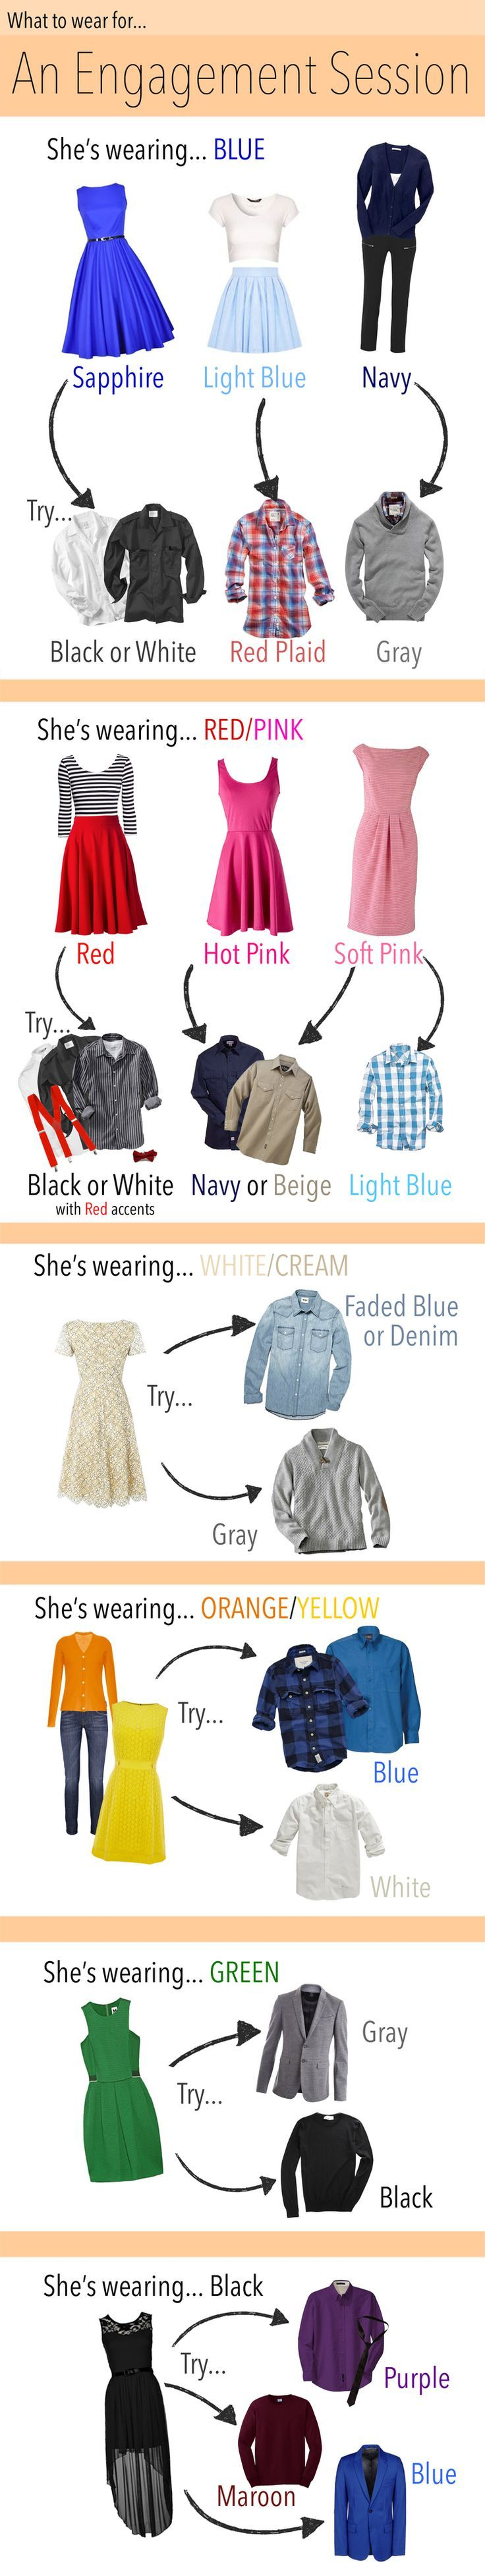 What to Wear for an Engagement Session - Couples Outfit Colors #outfits #engagement #outfits